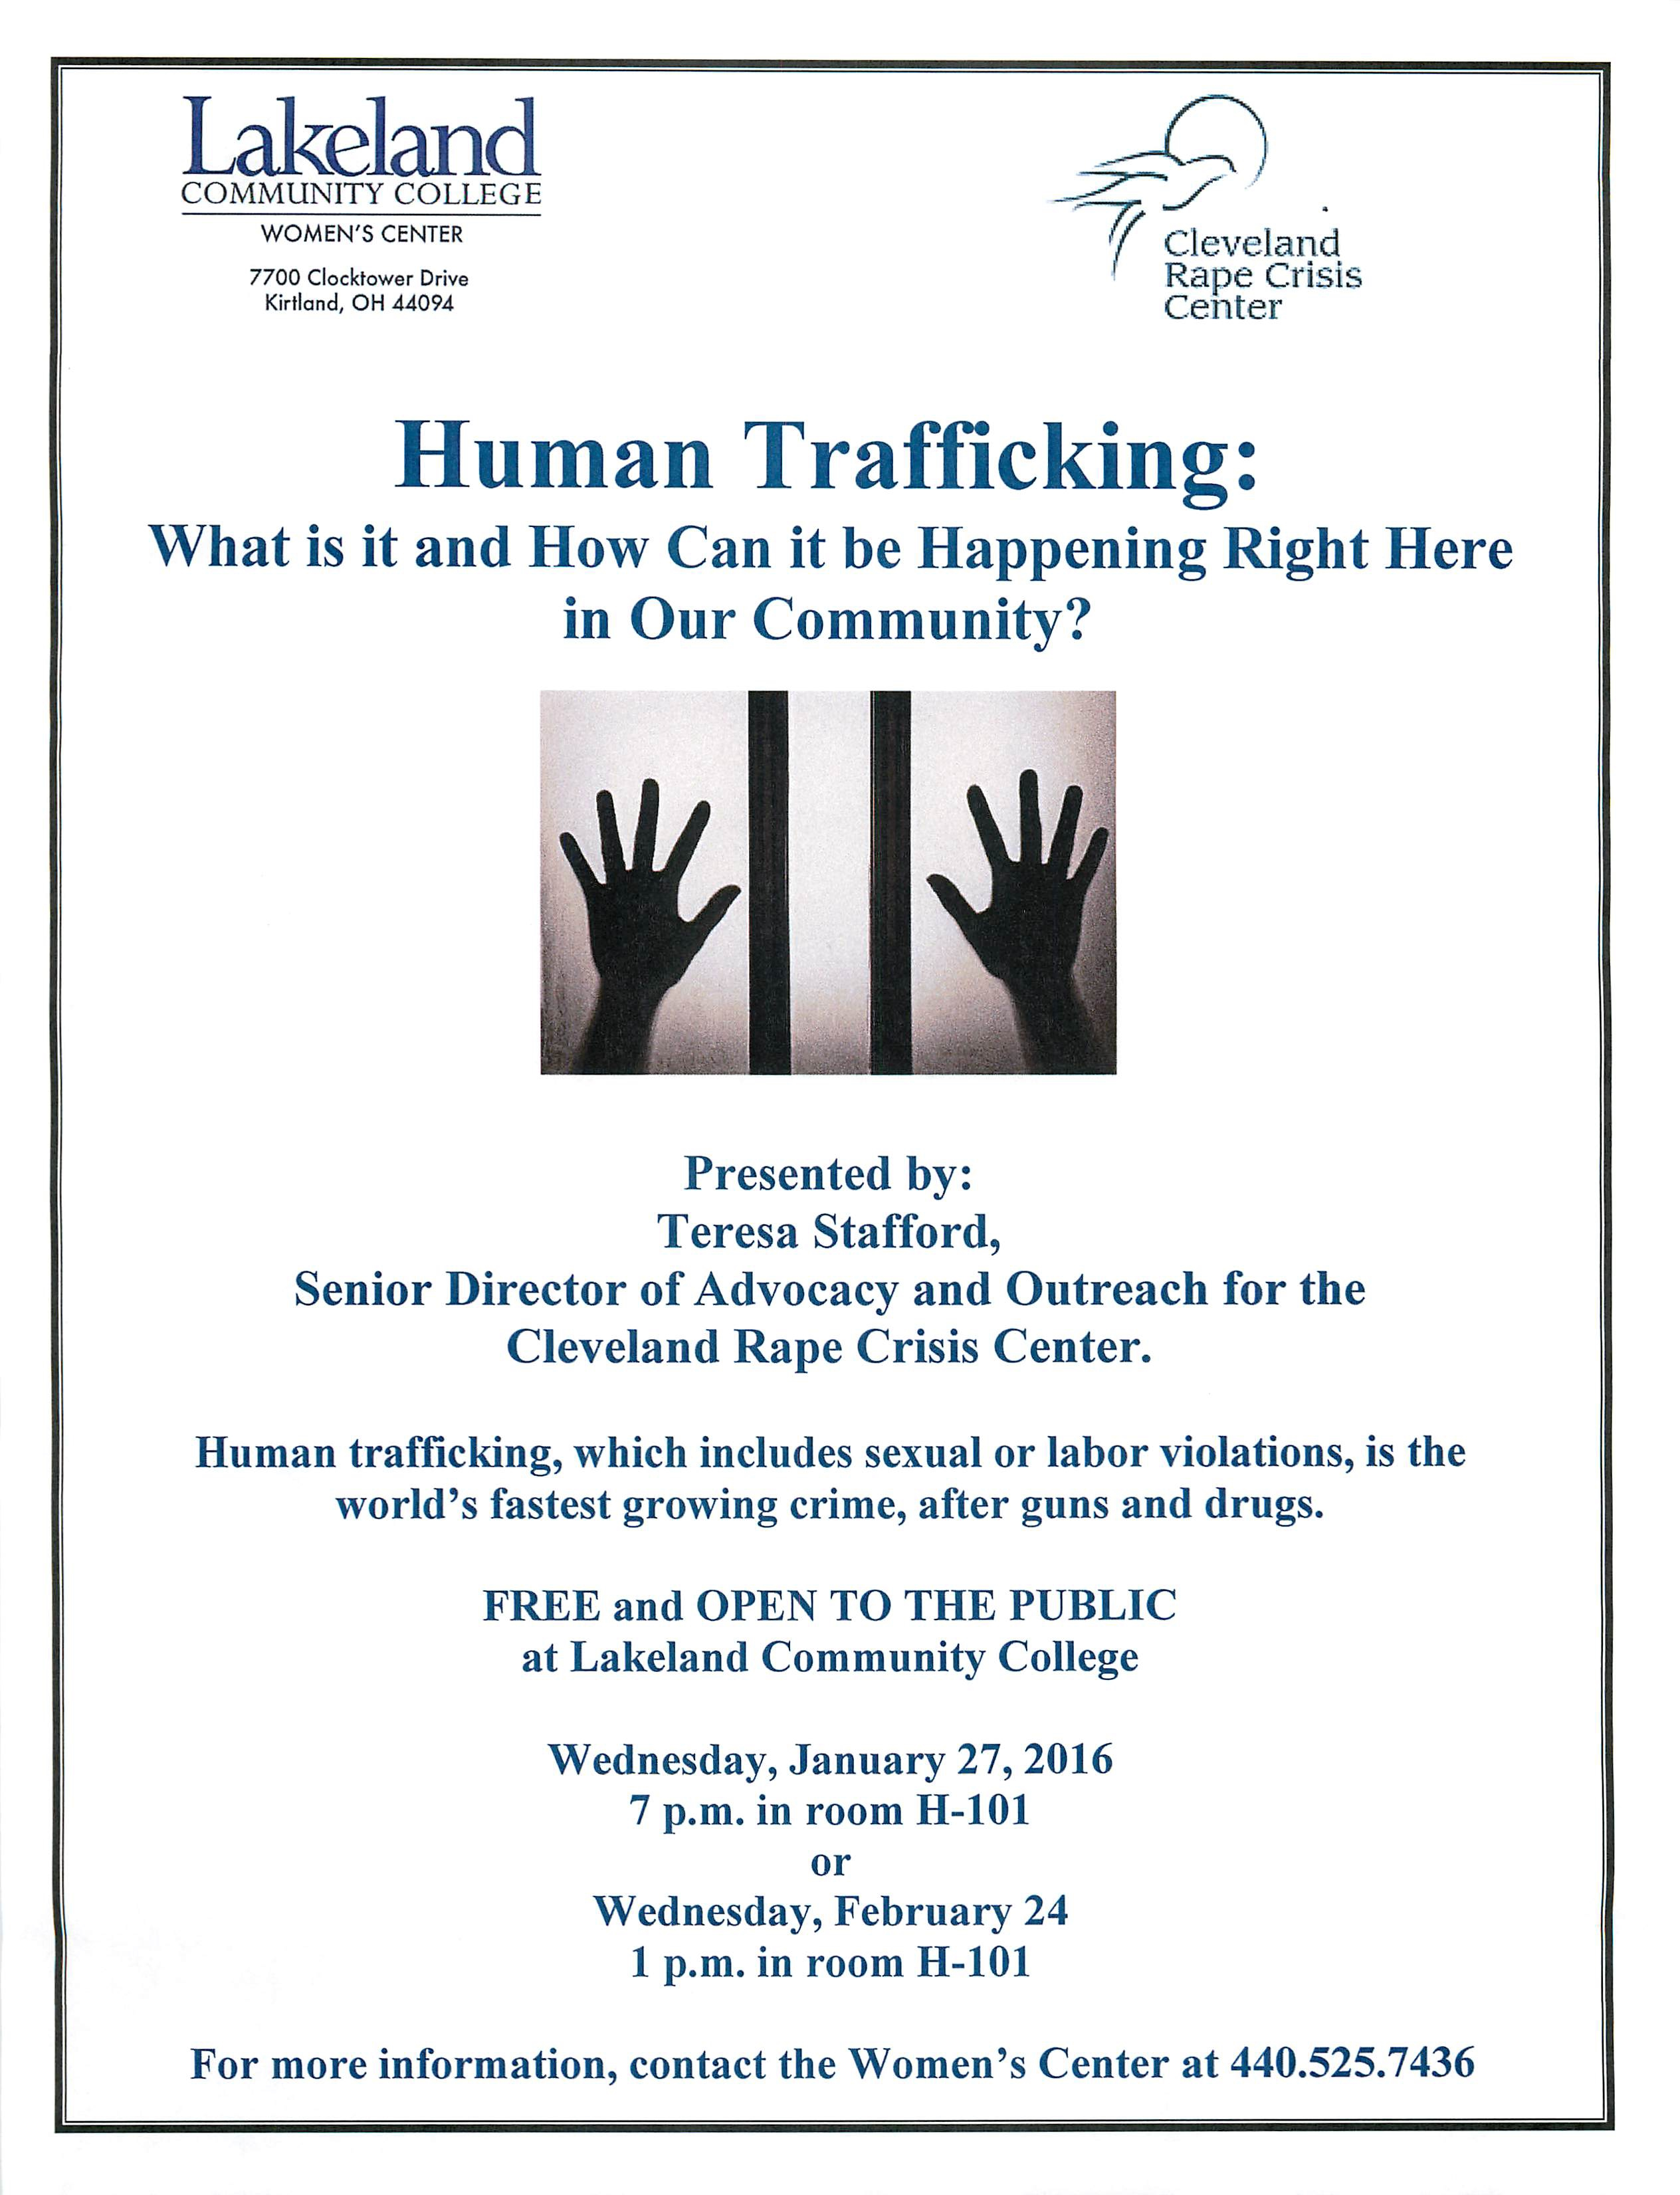 Human trafficking in our community january 27 2016 7 pm at human trafficking in our community january 27 2016 7 pm at lakeland community college fandeluxe Choice Image